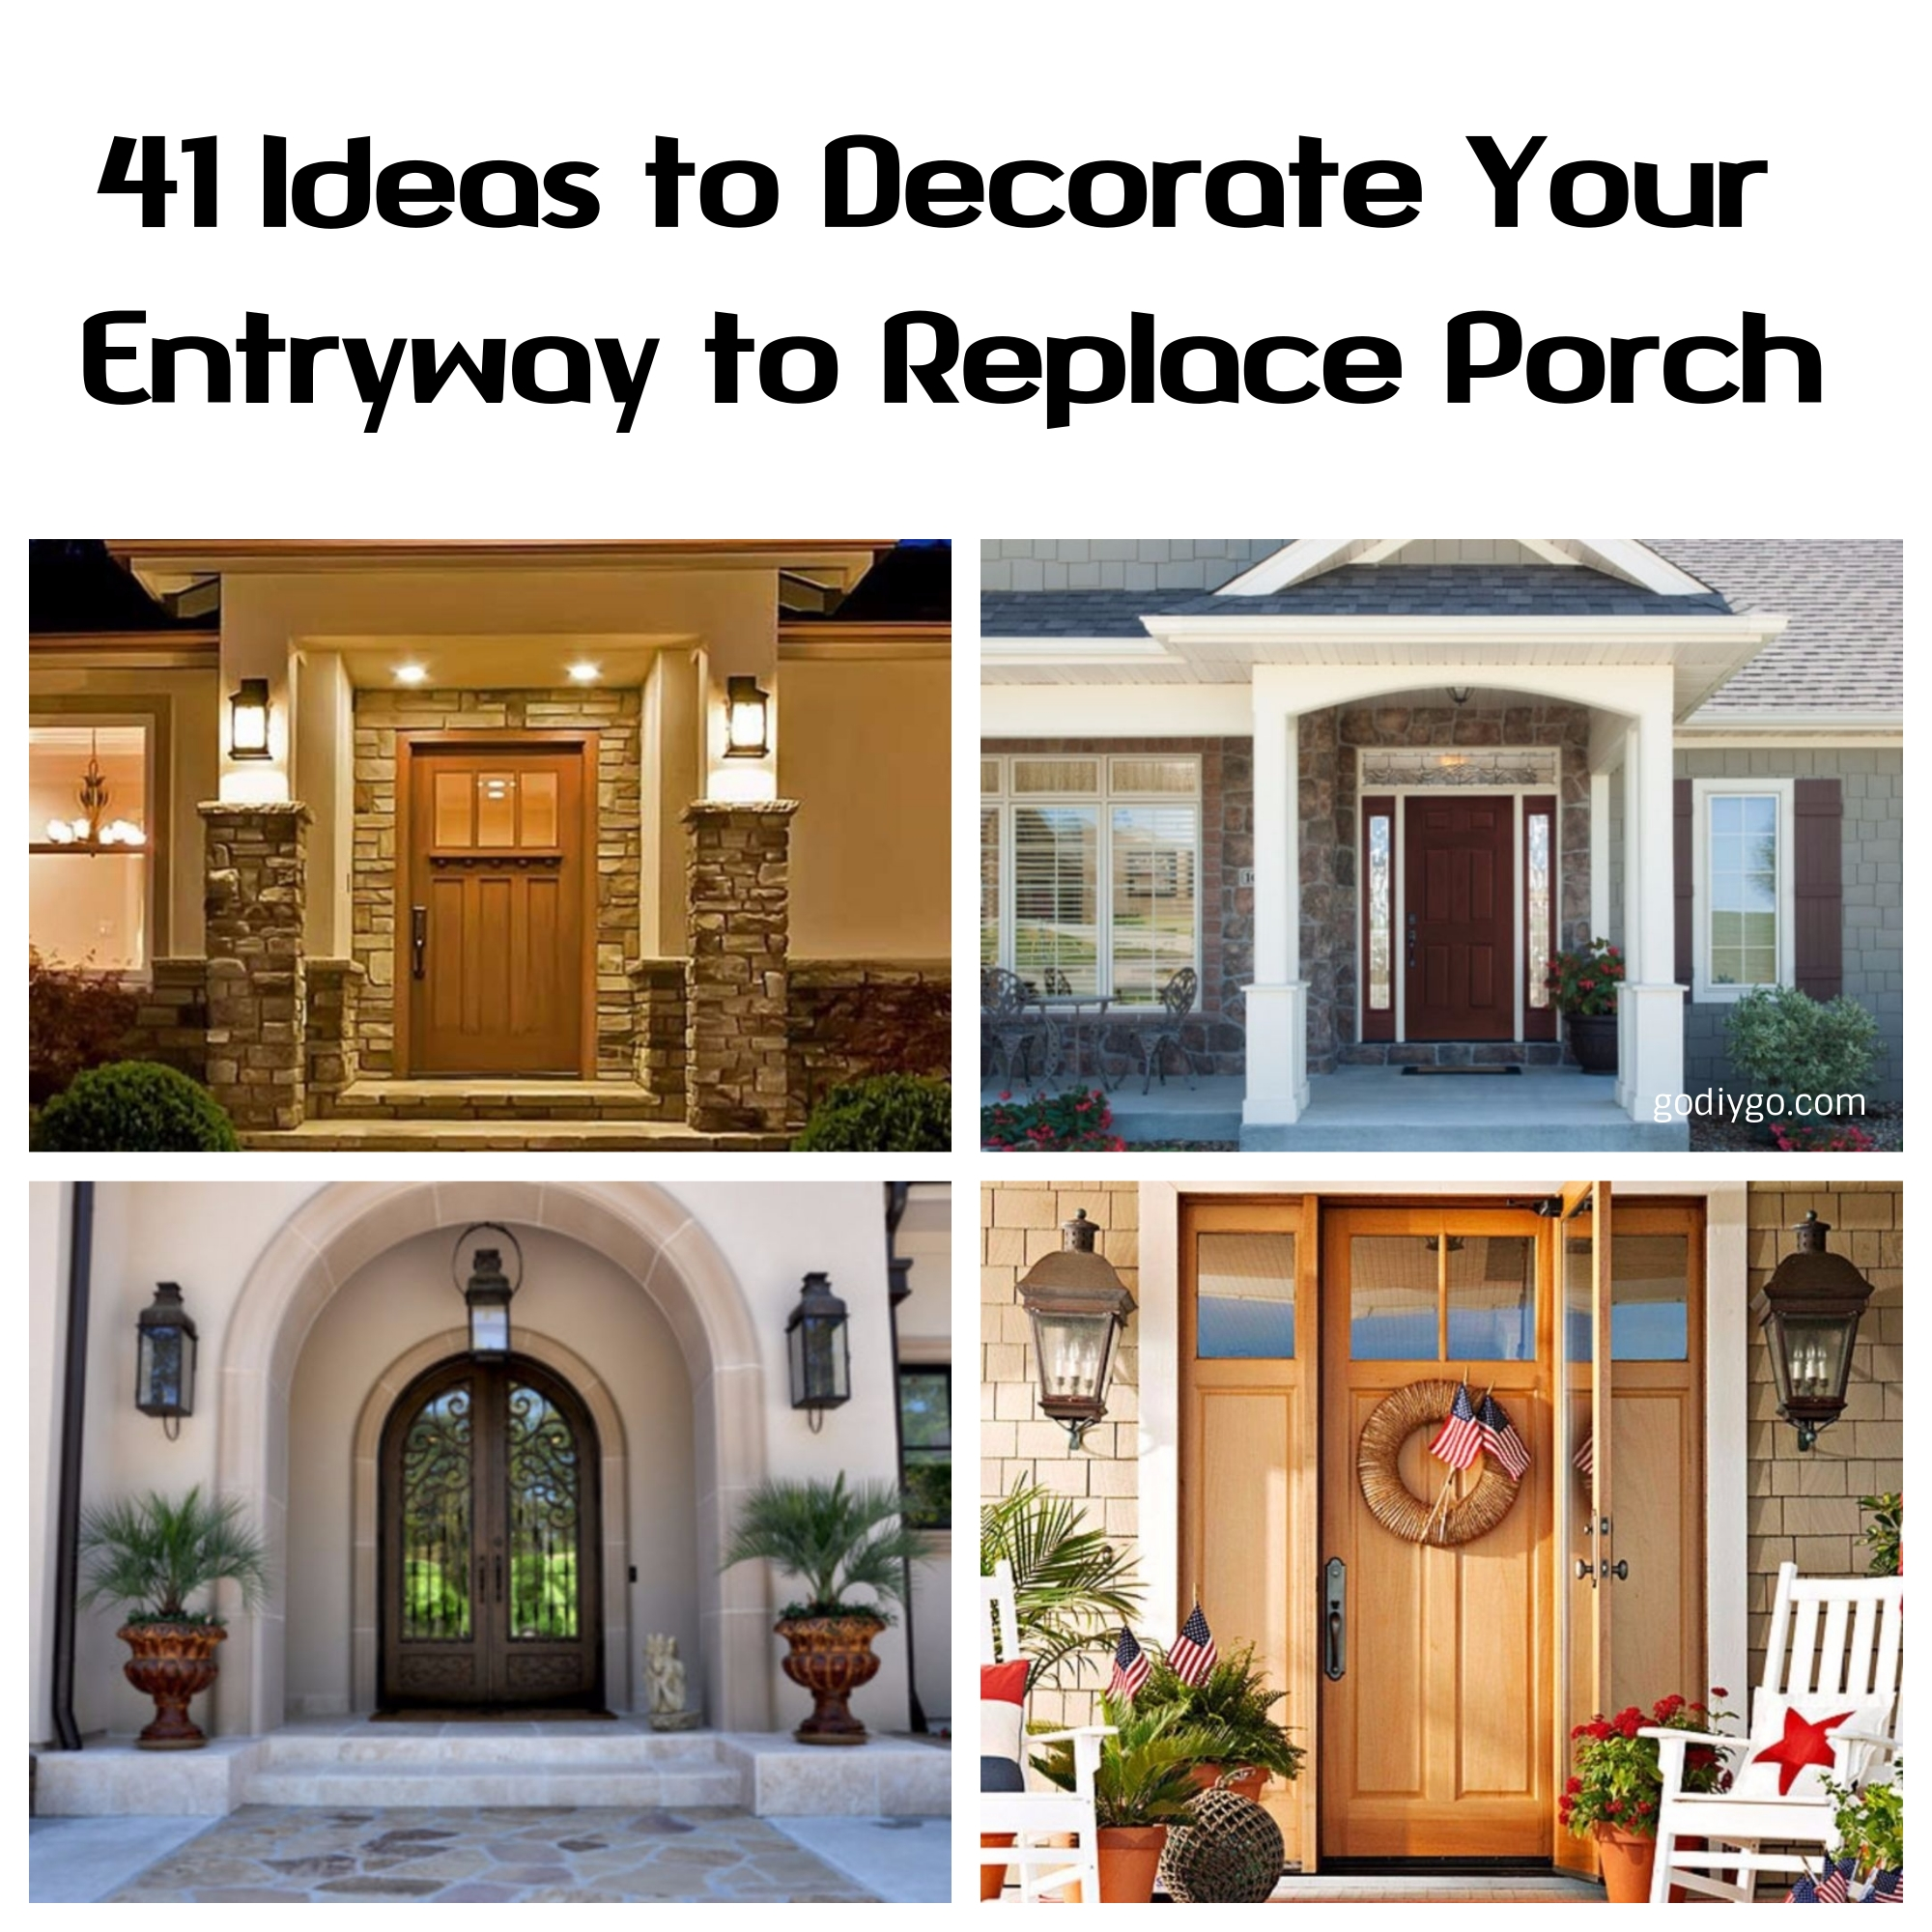 40 Entryway Decor Ideas To Try In Your House: 41 Ideas To Decorate Your Entryway To Replace Porch